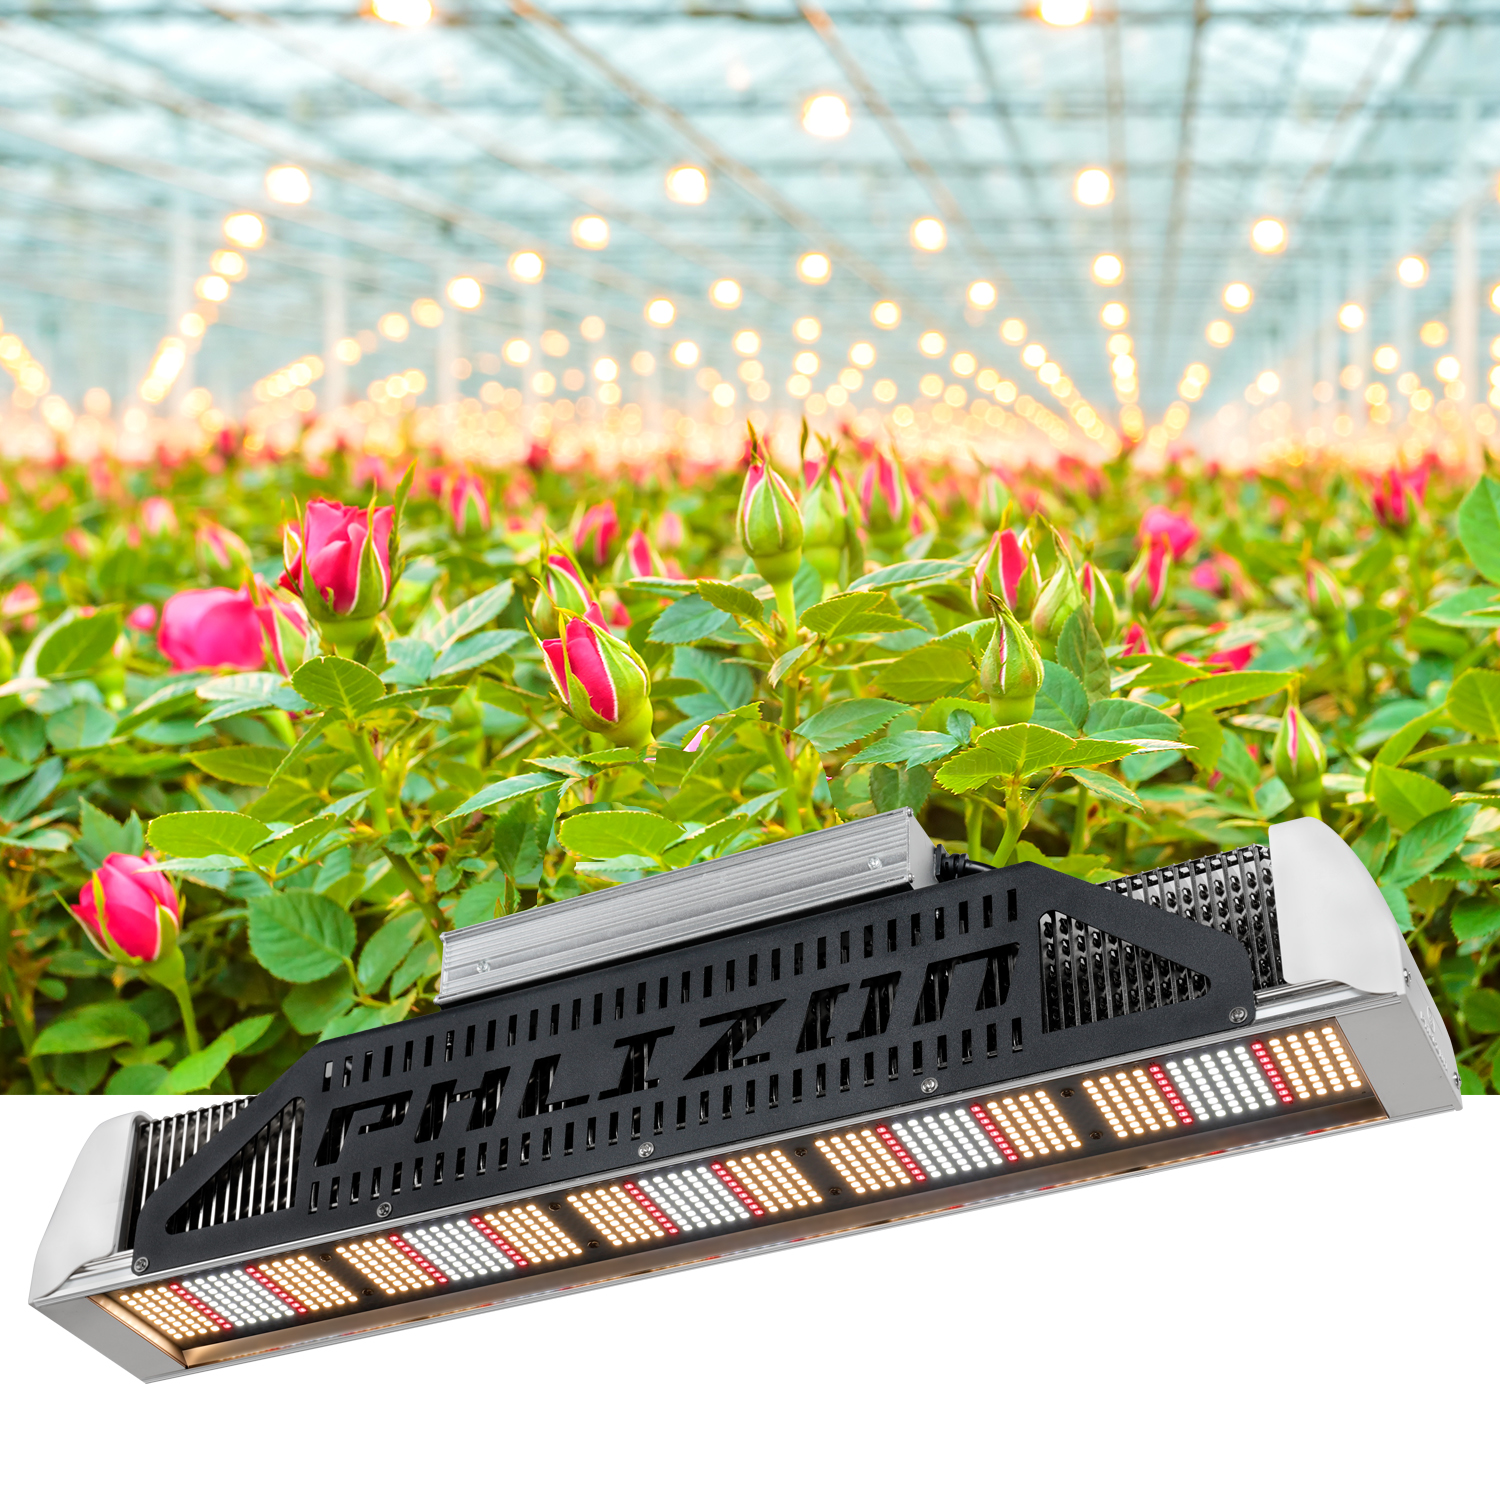 Phlizon Waterproof Plant Grow Light Full Spectrum Led Lamp 240W Hydroponic Cultivation Lamp Indoor And Outdoor